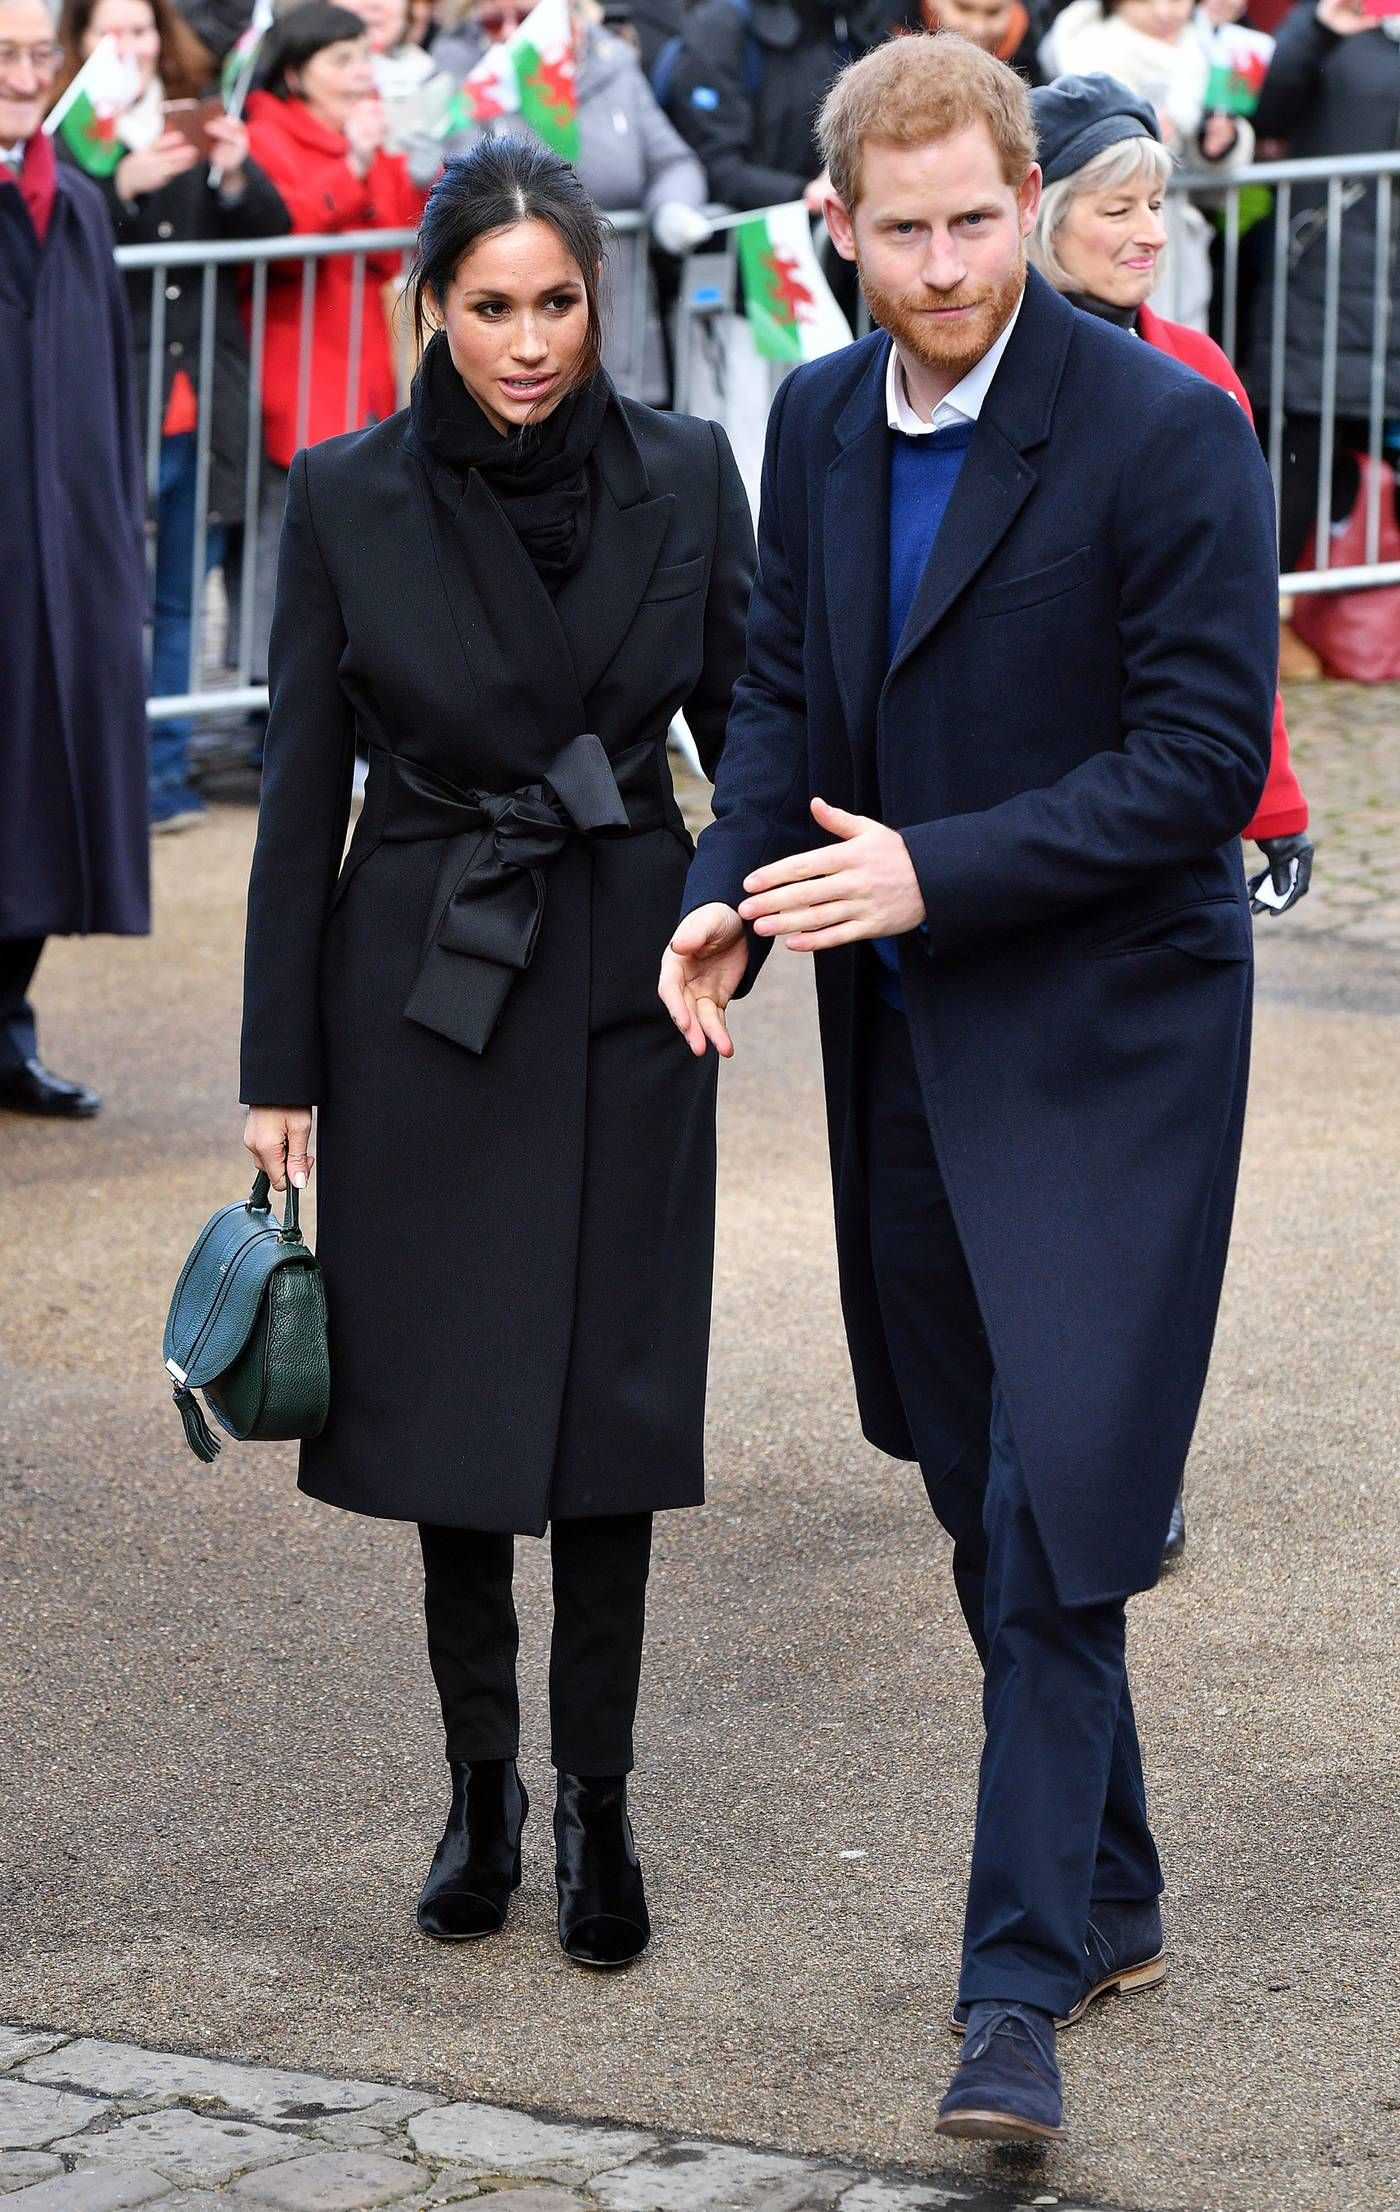 Pin By Latonia Clark On Duke And Duchess Of Sussex Prince Harry And Meghan Harry And Meghan Markle Prince Harry